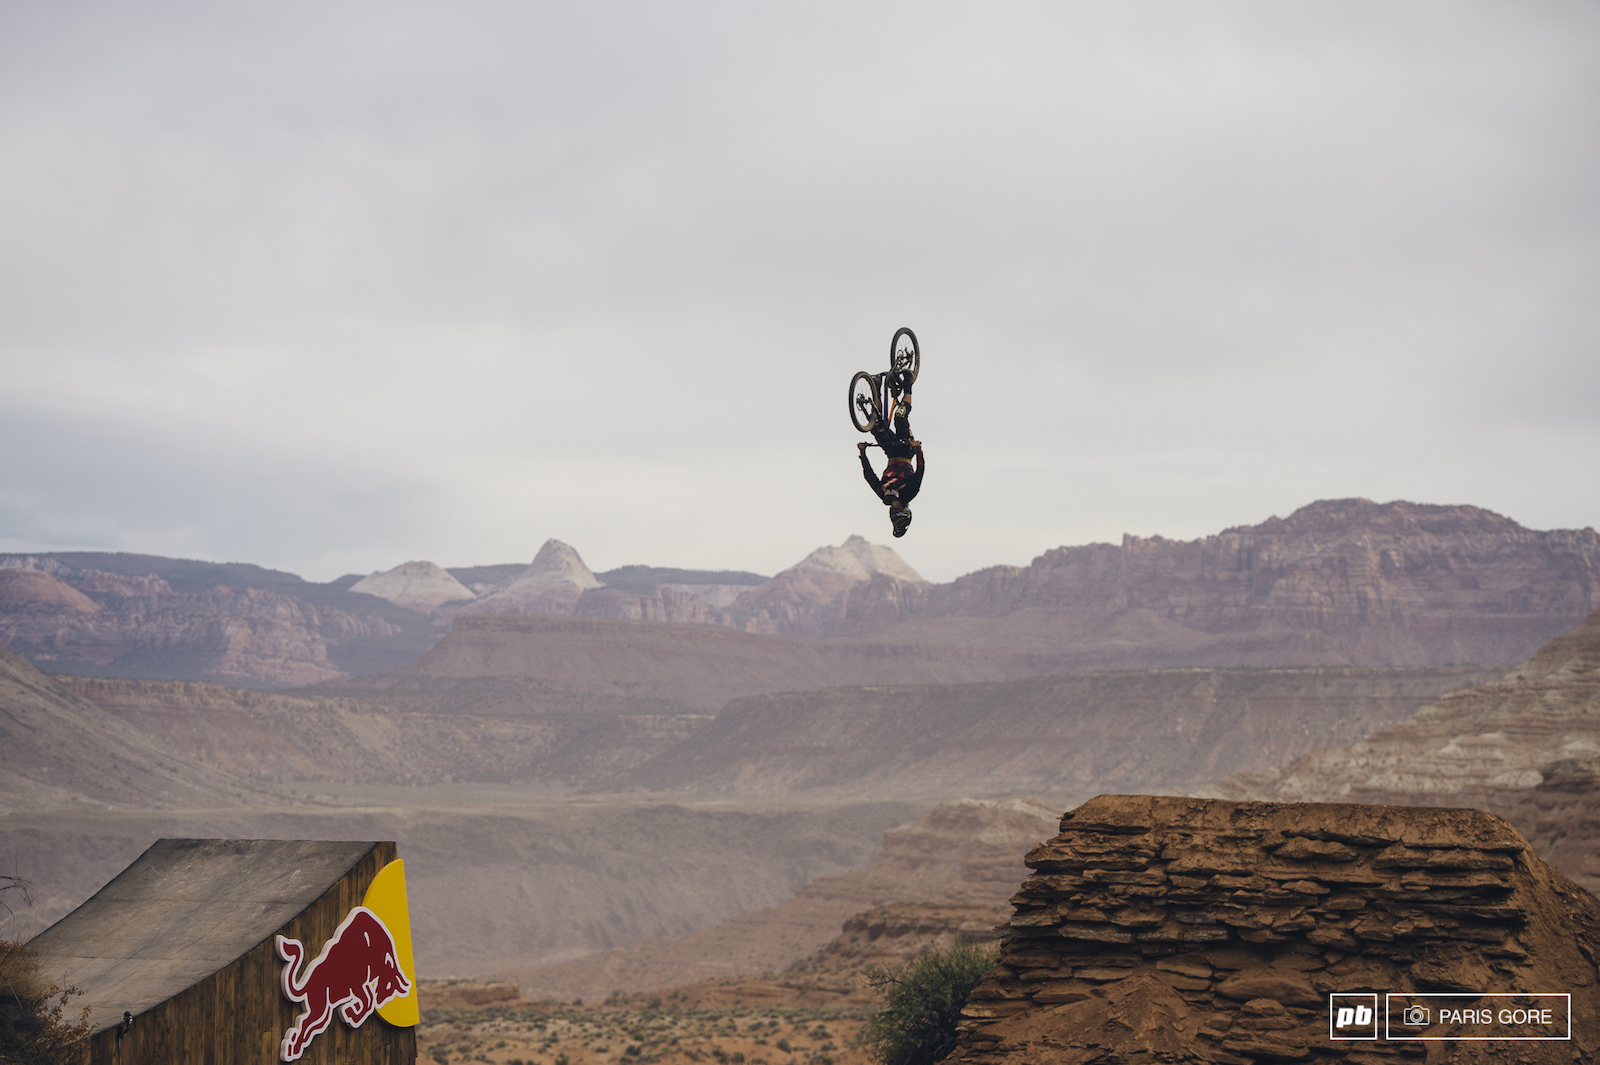 Antoine Bizet hands down would have run Red Bull Rampage this year had he landed his double backflip on the lower RZR booter. Frontflip up top canyon gap flip and double flip lower down was absolutely incredible to watch.